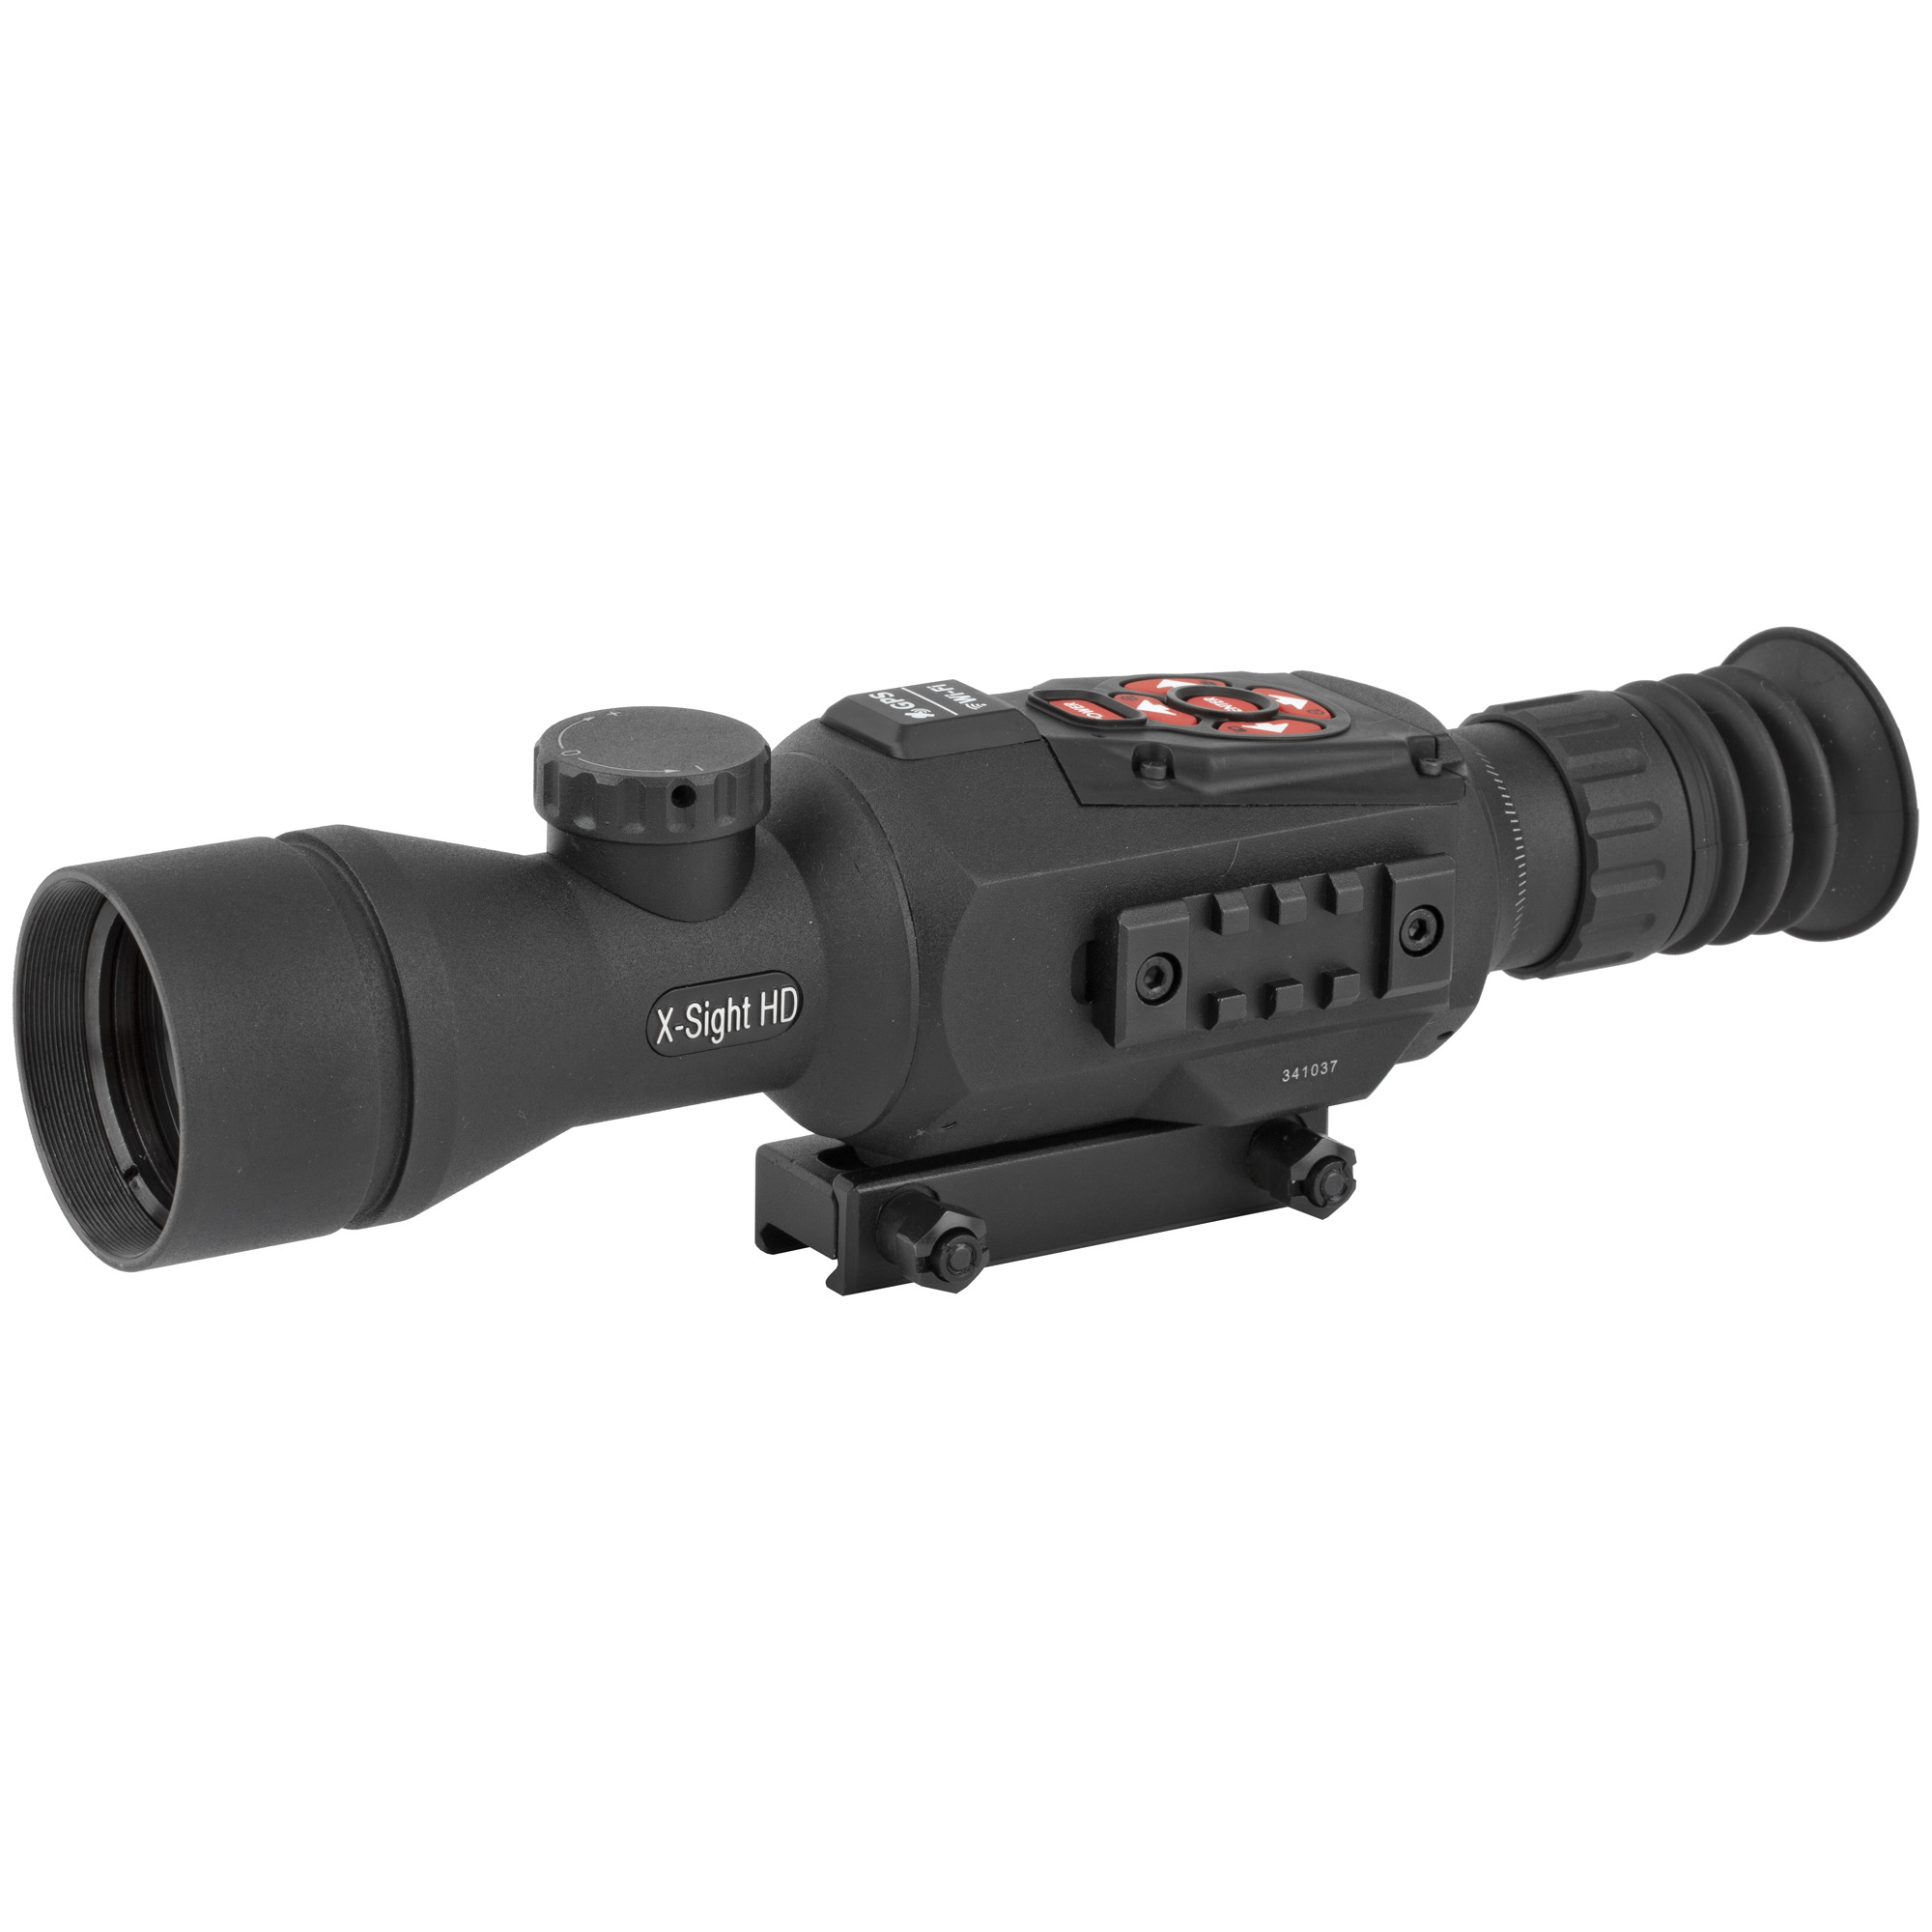 """ATN X-Sight II are the world's most advanced Smart Day/Night Rifle Scopes at an unbelievable price. Offered in 1080p resolution"""" X-Sight II hunting scopes provide high resolution clarity"""" long range detection and a host of features powered by the ATN Obsidian Core. Immerse yourself in a cockpit like environment that combines your HD image with data from numerous built-in environmental sensors. Record Video/Pictures with a press of a button onto an internal SD card and Stream what you are seeing to a phone or a table. Utilize the internal Ballistic Calculator to make even the longest shot a breeze. Wi-Fi"""" GPS"""" 3D Accelerometer"""" 3D Gyroscope"""" 3D Magnetometer"""" Microphone"""" HDMI"""" USB"""" Micro SD and the latest imaging sensor create the most advanced Day/Night Scope on the market today. Self Defense"""" Shooting"""" Hunting"""" Security"""" Boating & Law Enforcement are just some of uses found for the digital rifle scope X-Sight II."""